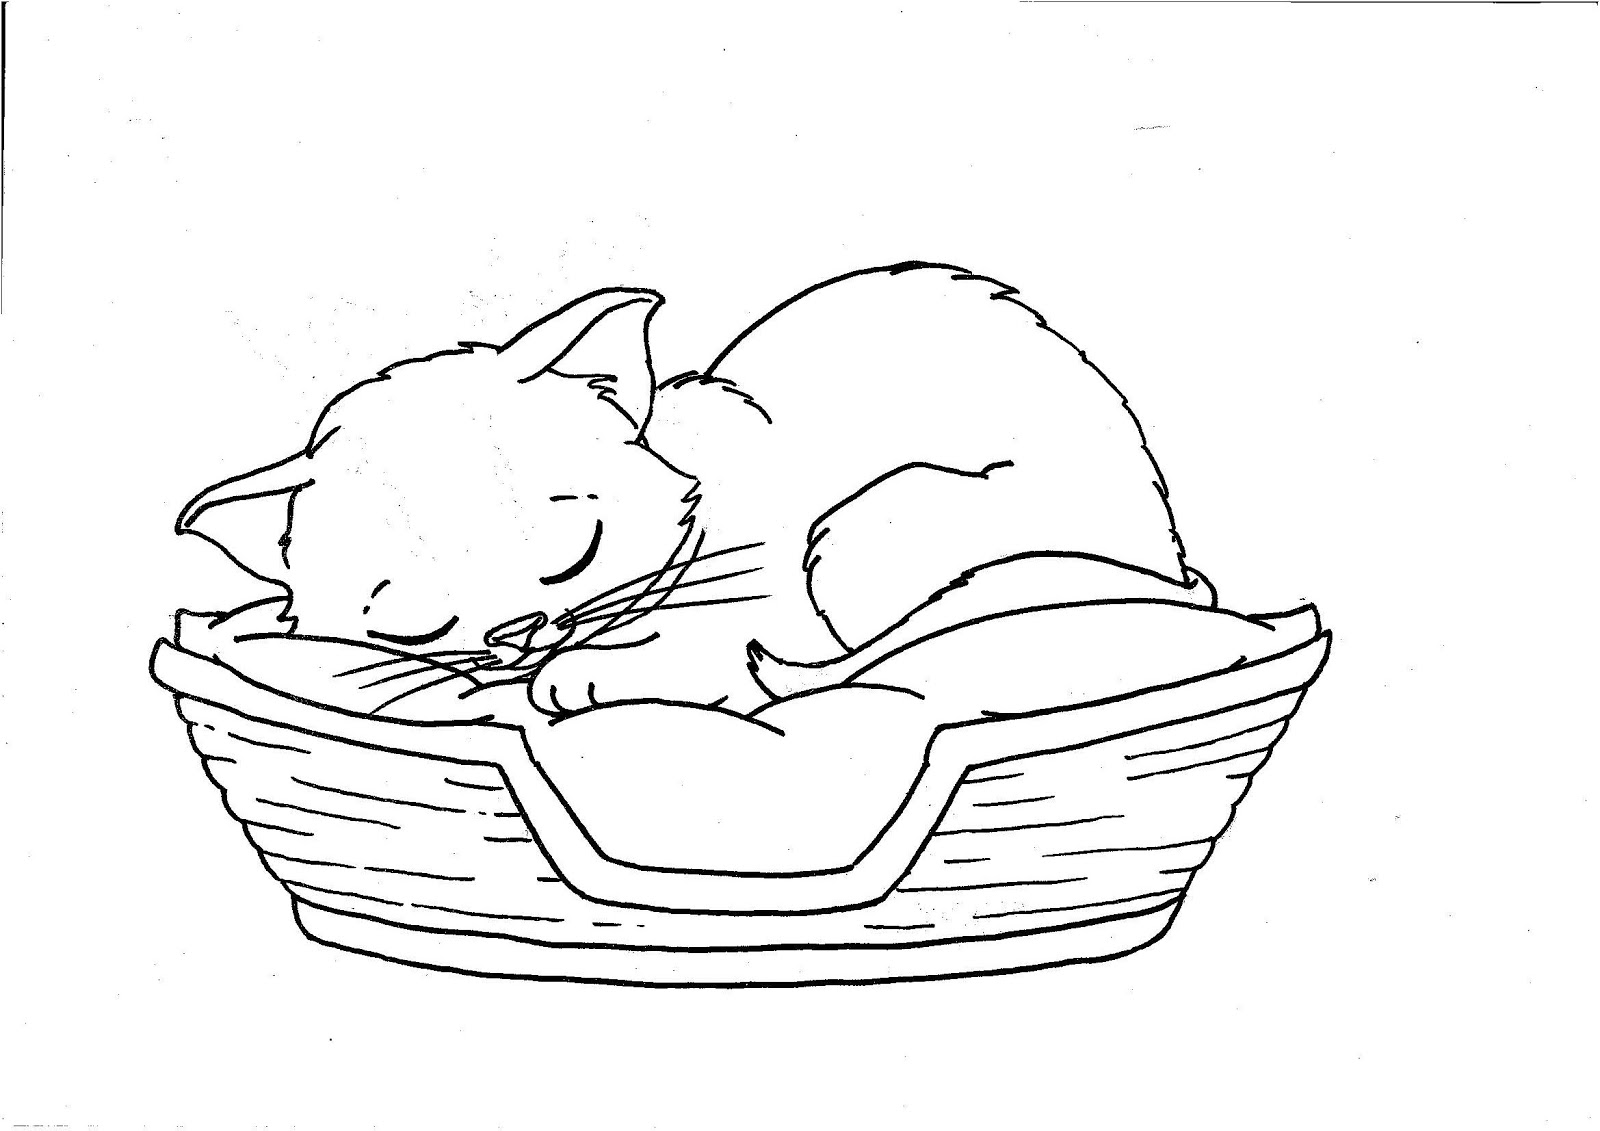 Free coloring pages puppies and kittens - Free Sleeping Kitten Coloring Pages